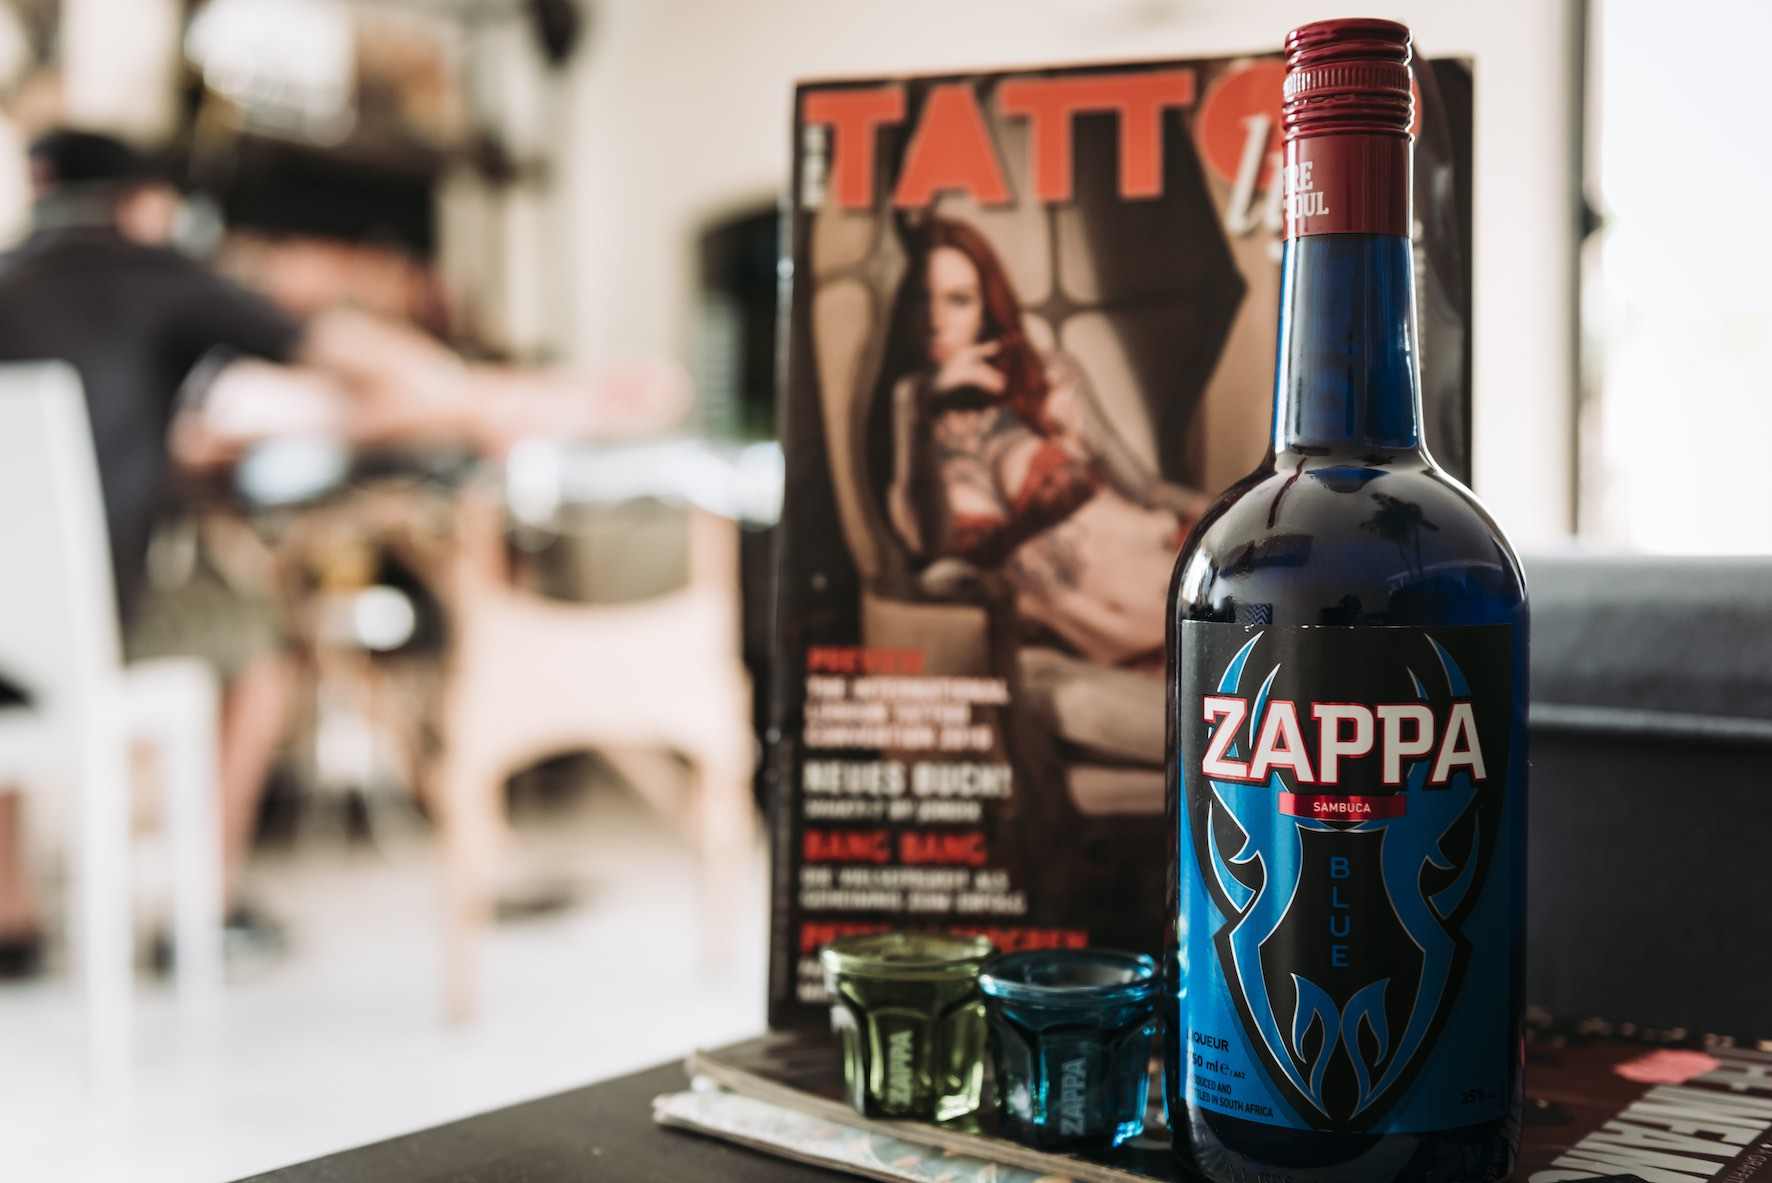 Our tattoo artist of the week features brought to you by Zappa Sambuca